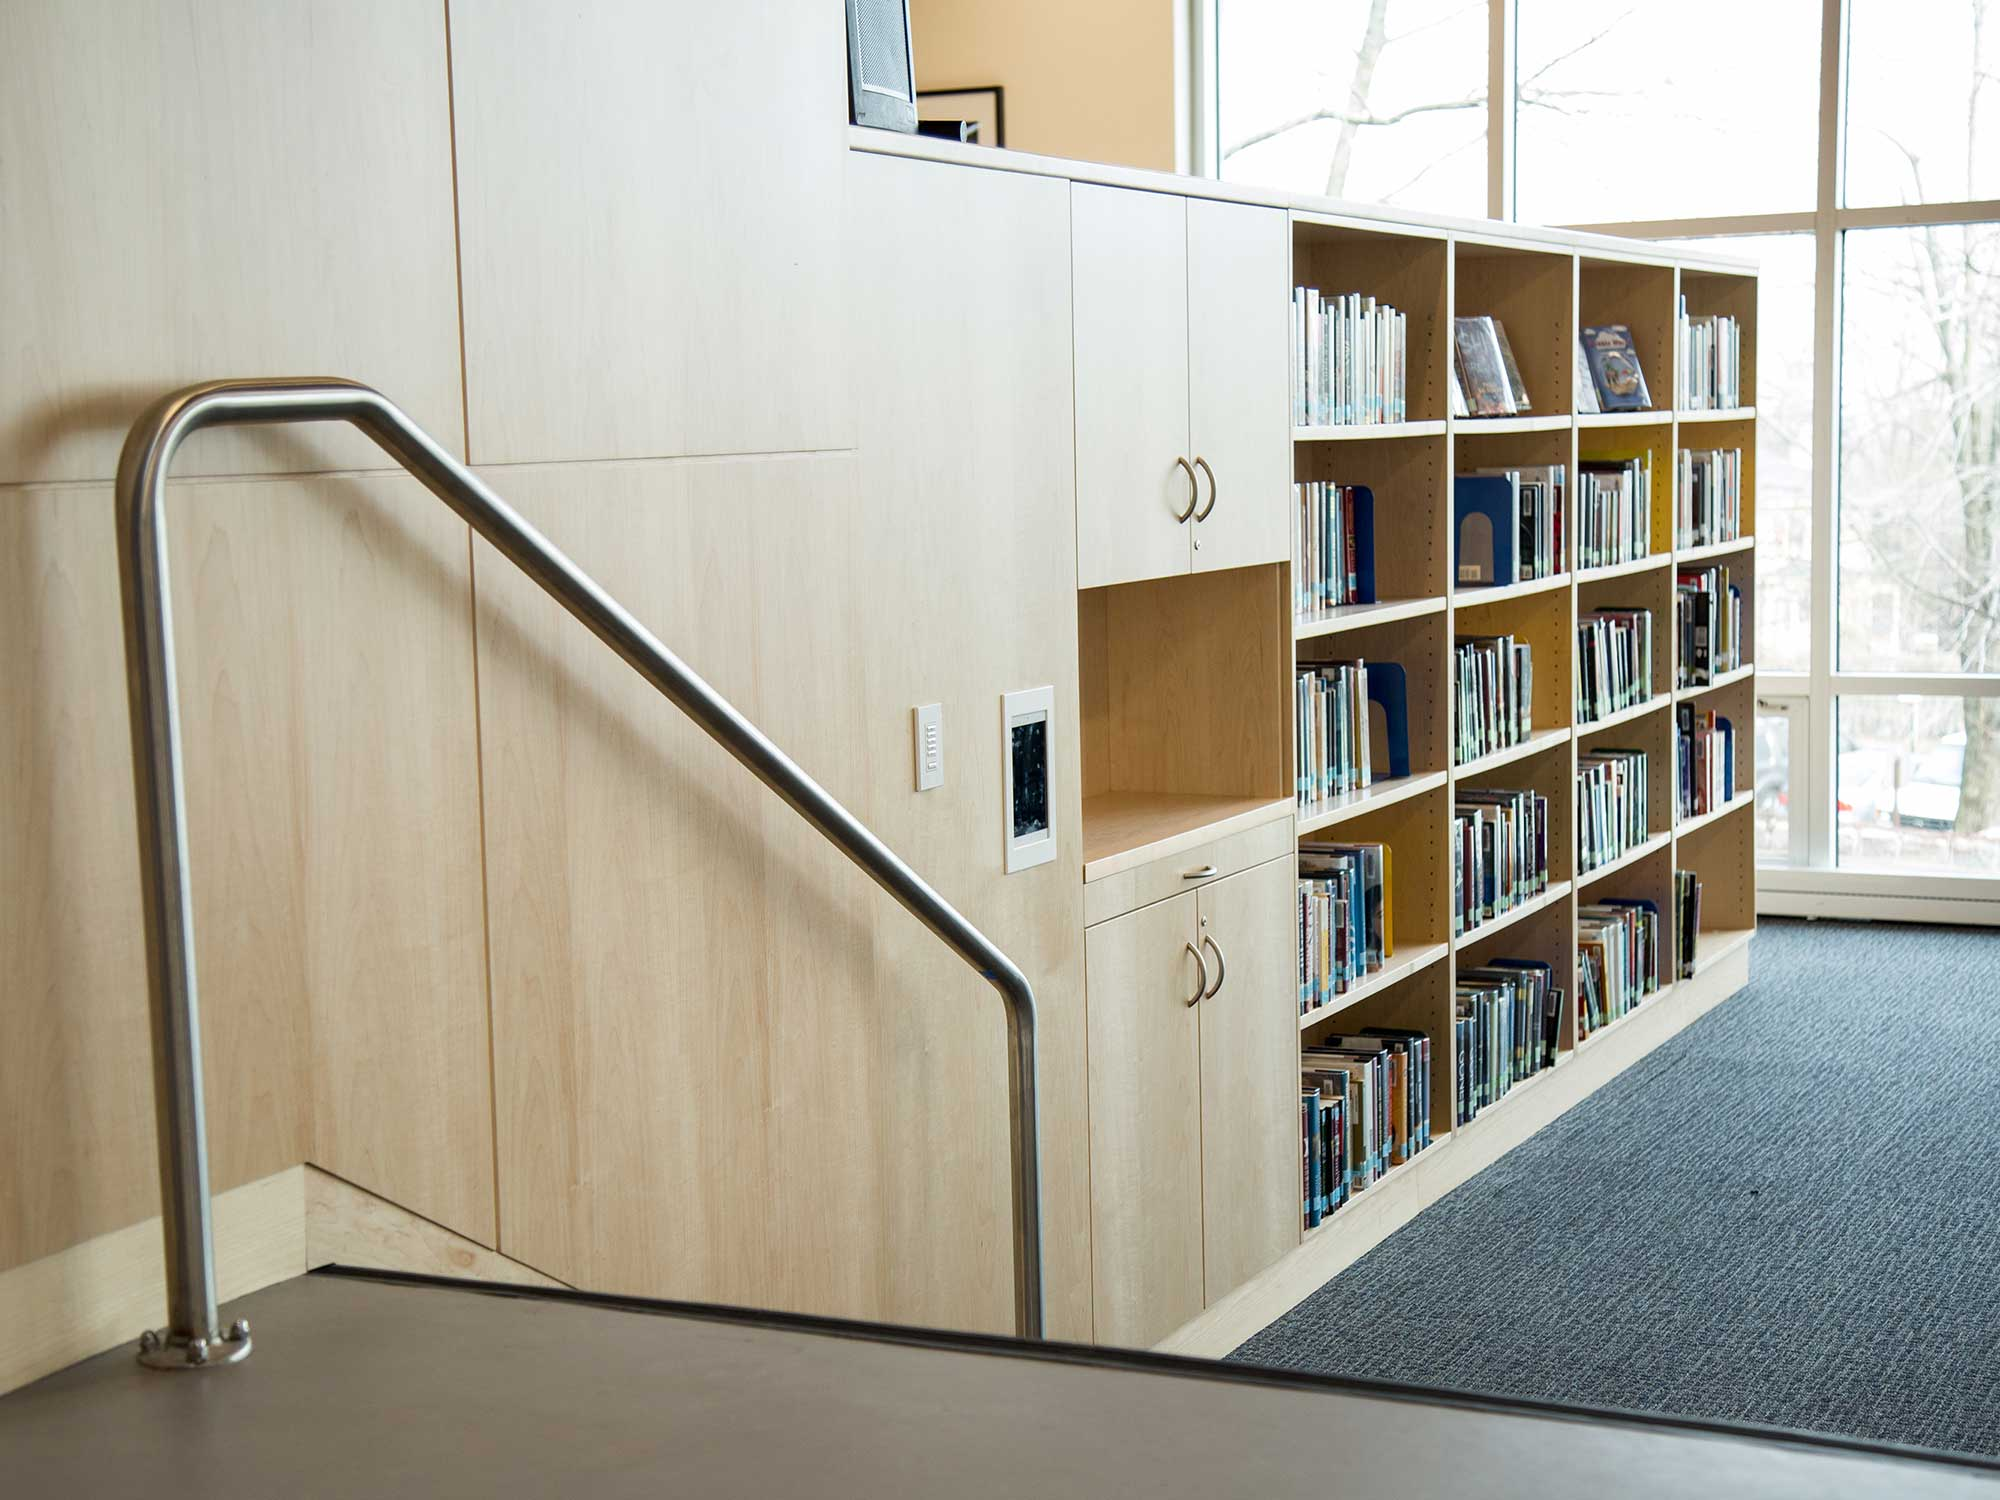 Built-in library shelves